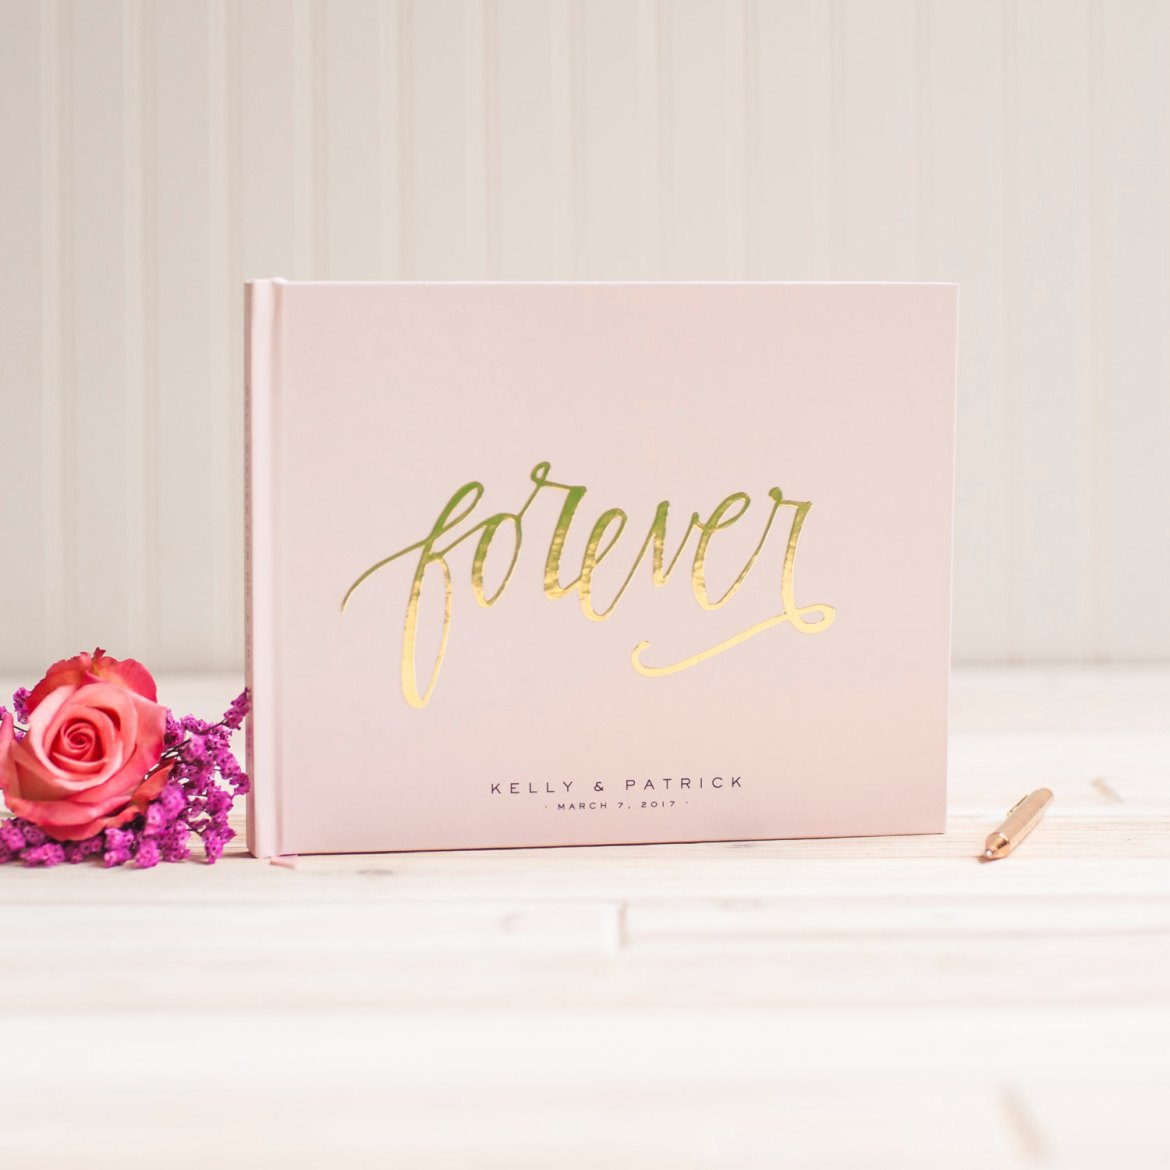 Gold Foil Guest Books for Weddings - By Starboard Press on Etsy